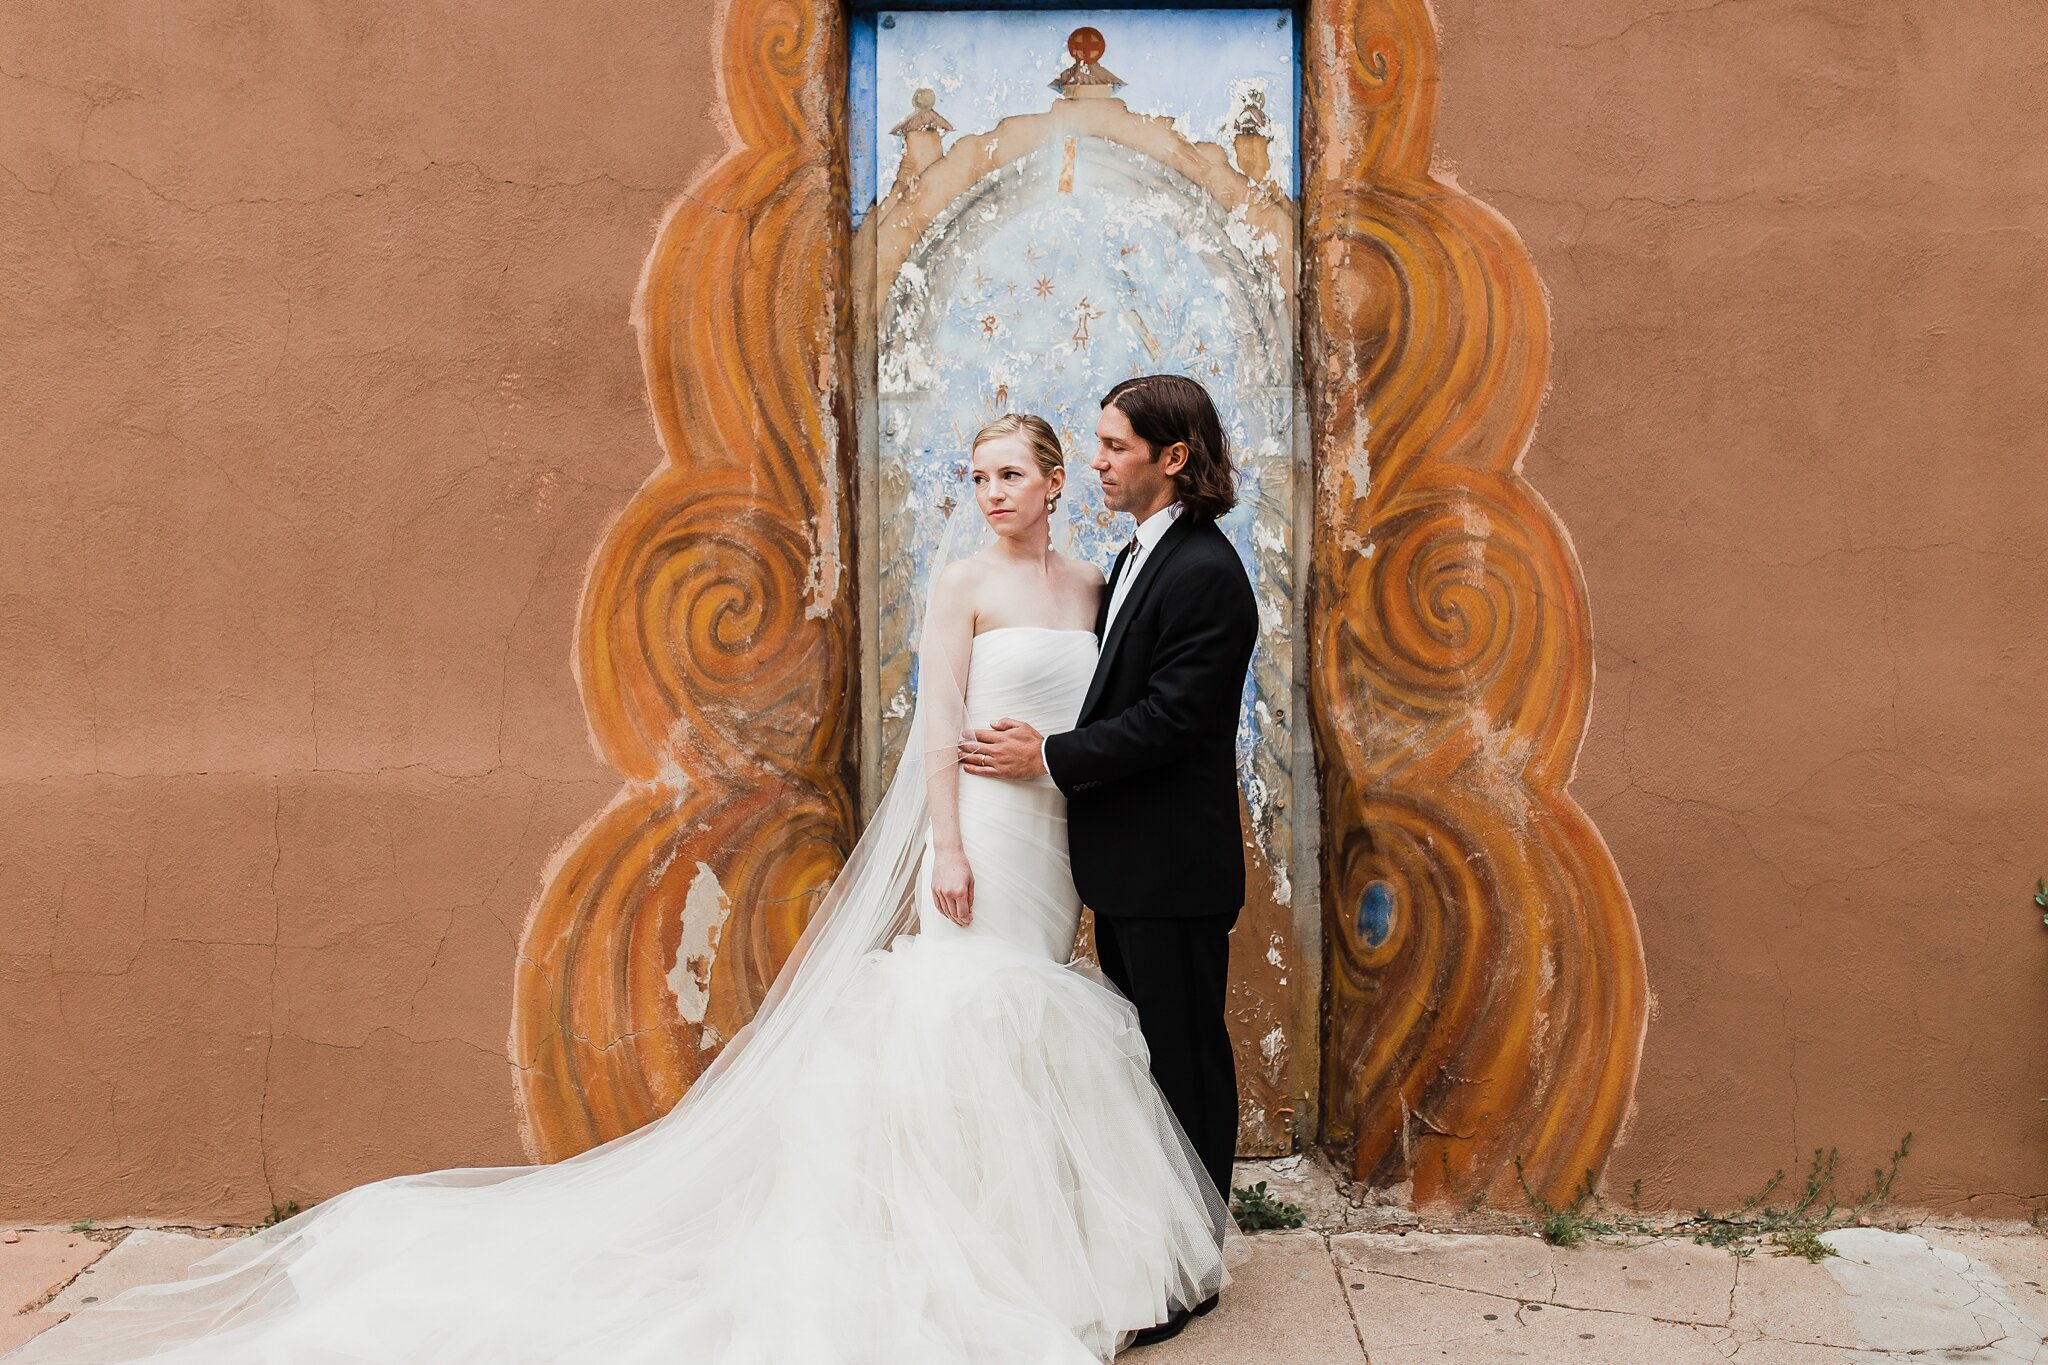 Alicia+lucia+photography+-+albuquerque+wedding+photographer+-+santa+fe+wedding+photography+-+new+mexico+wedding+photographer+-+new+mexico+wedding+-+la+fonda+wedding+-+la+fonda+on+the+plaza+-+santa+fe+wedding+-+brooklyn+bride_0078.jpg